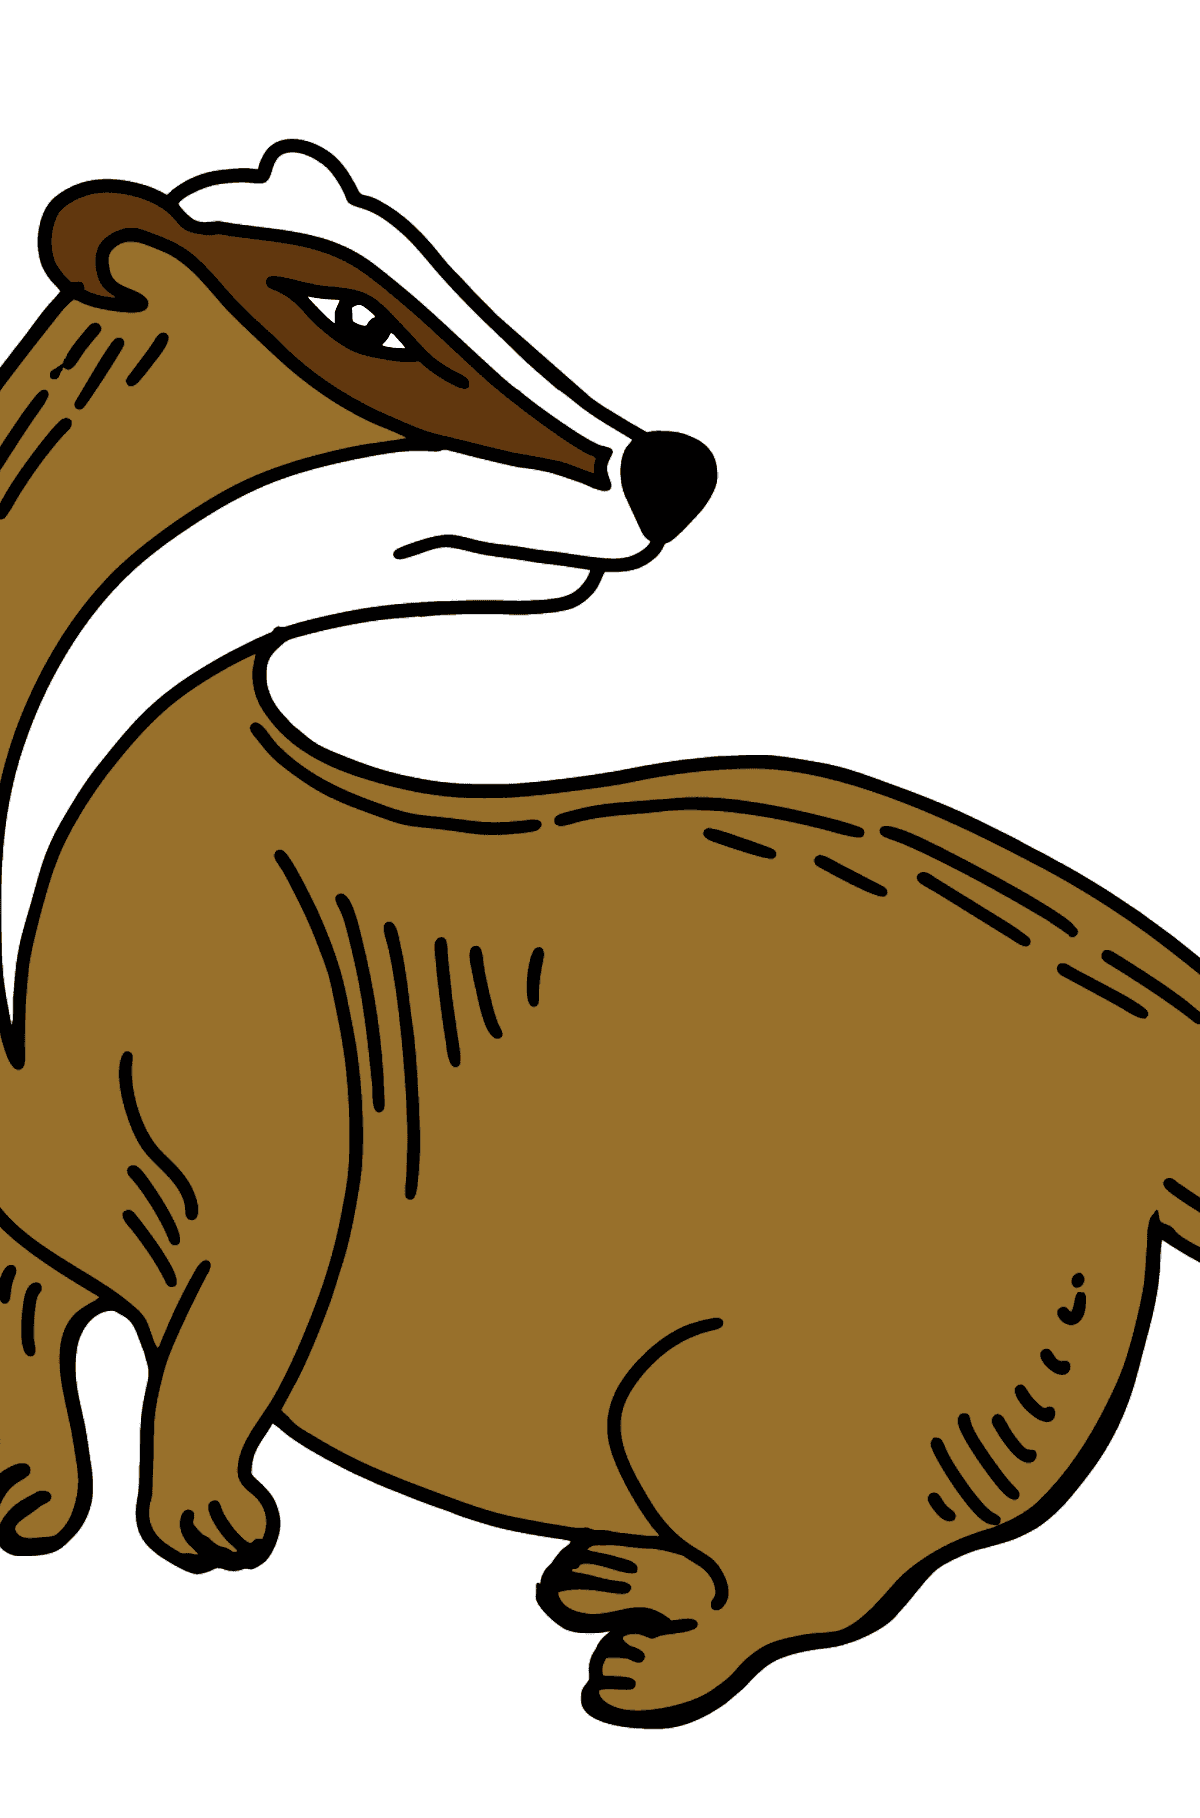 Badger coloring page - Coloring Pages for Kids